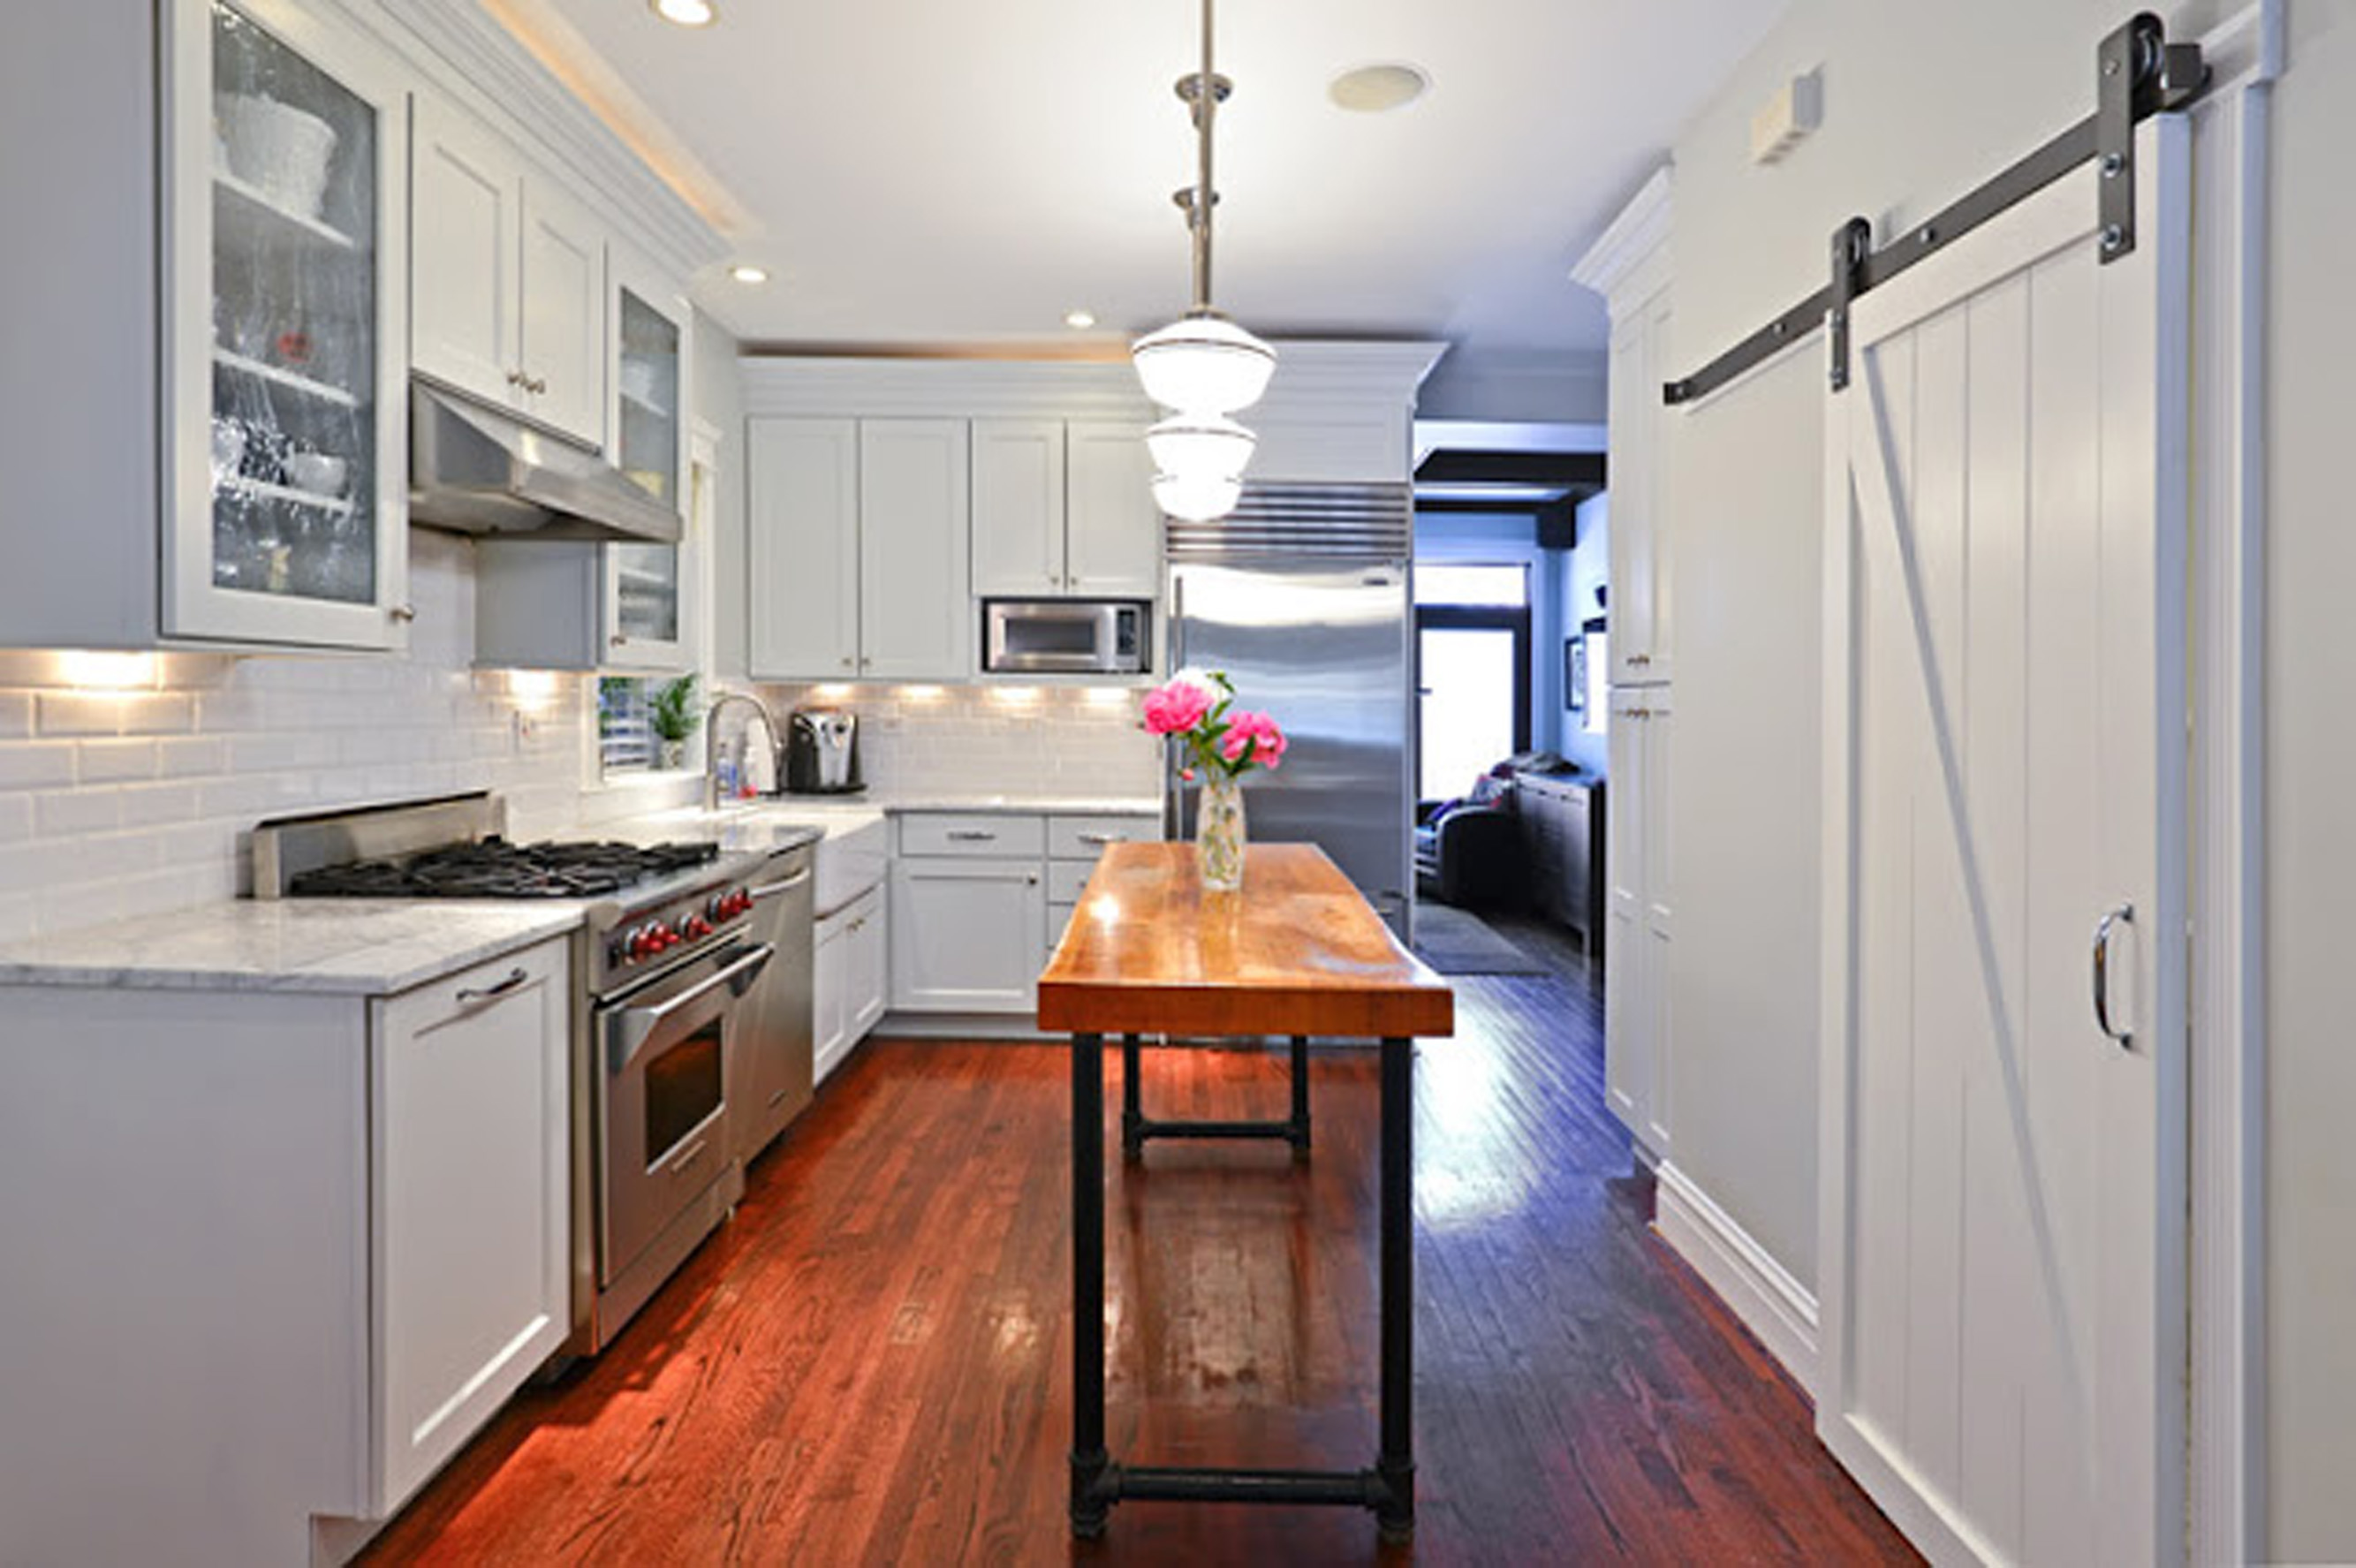 Barn Door Style Kitchen Cabinets Victorian Renovation And Design Lincthelendesign